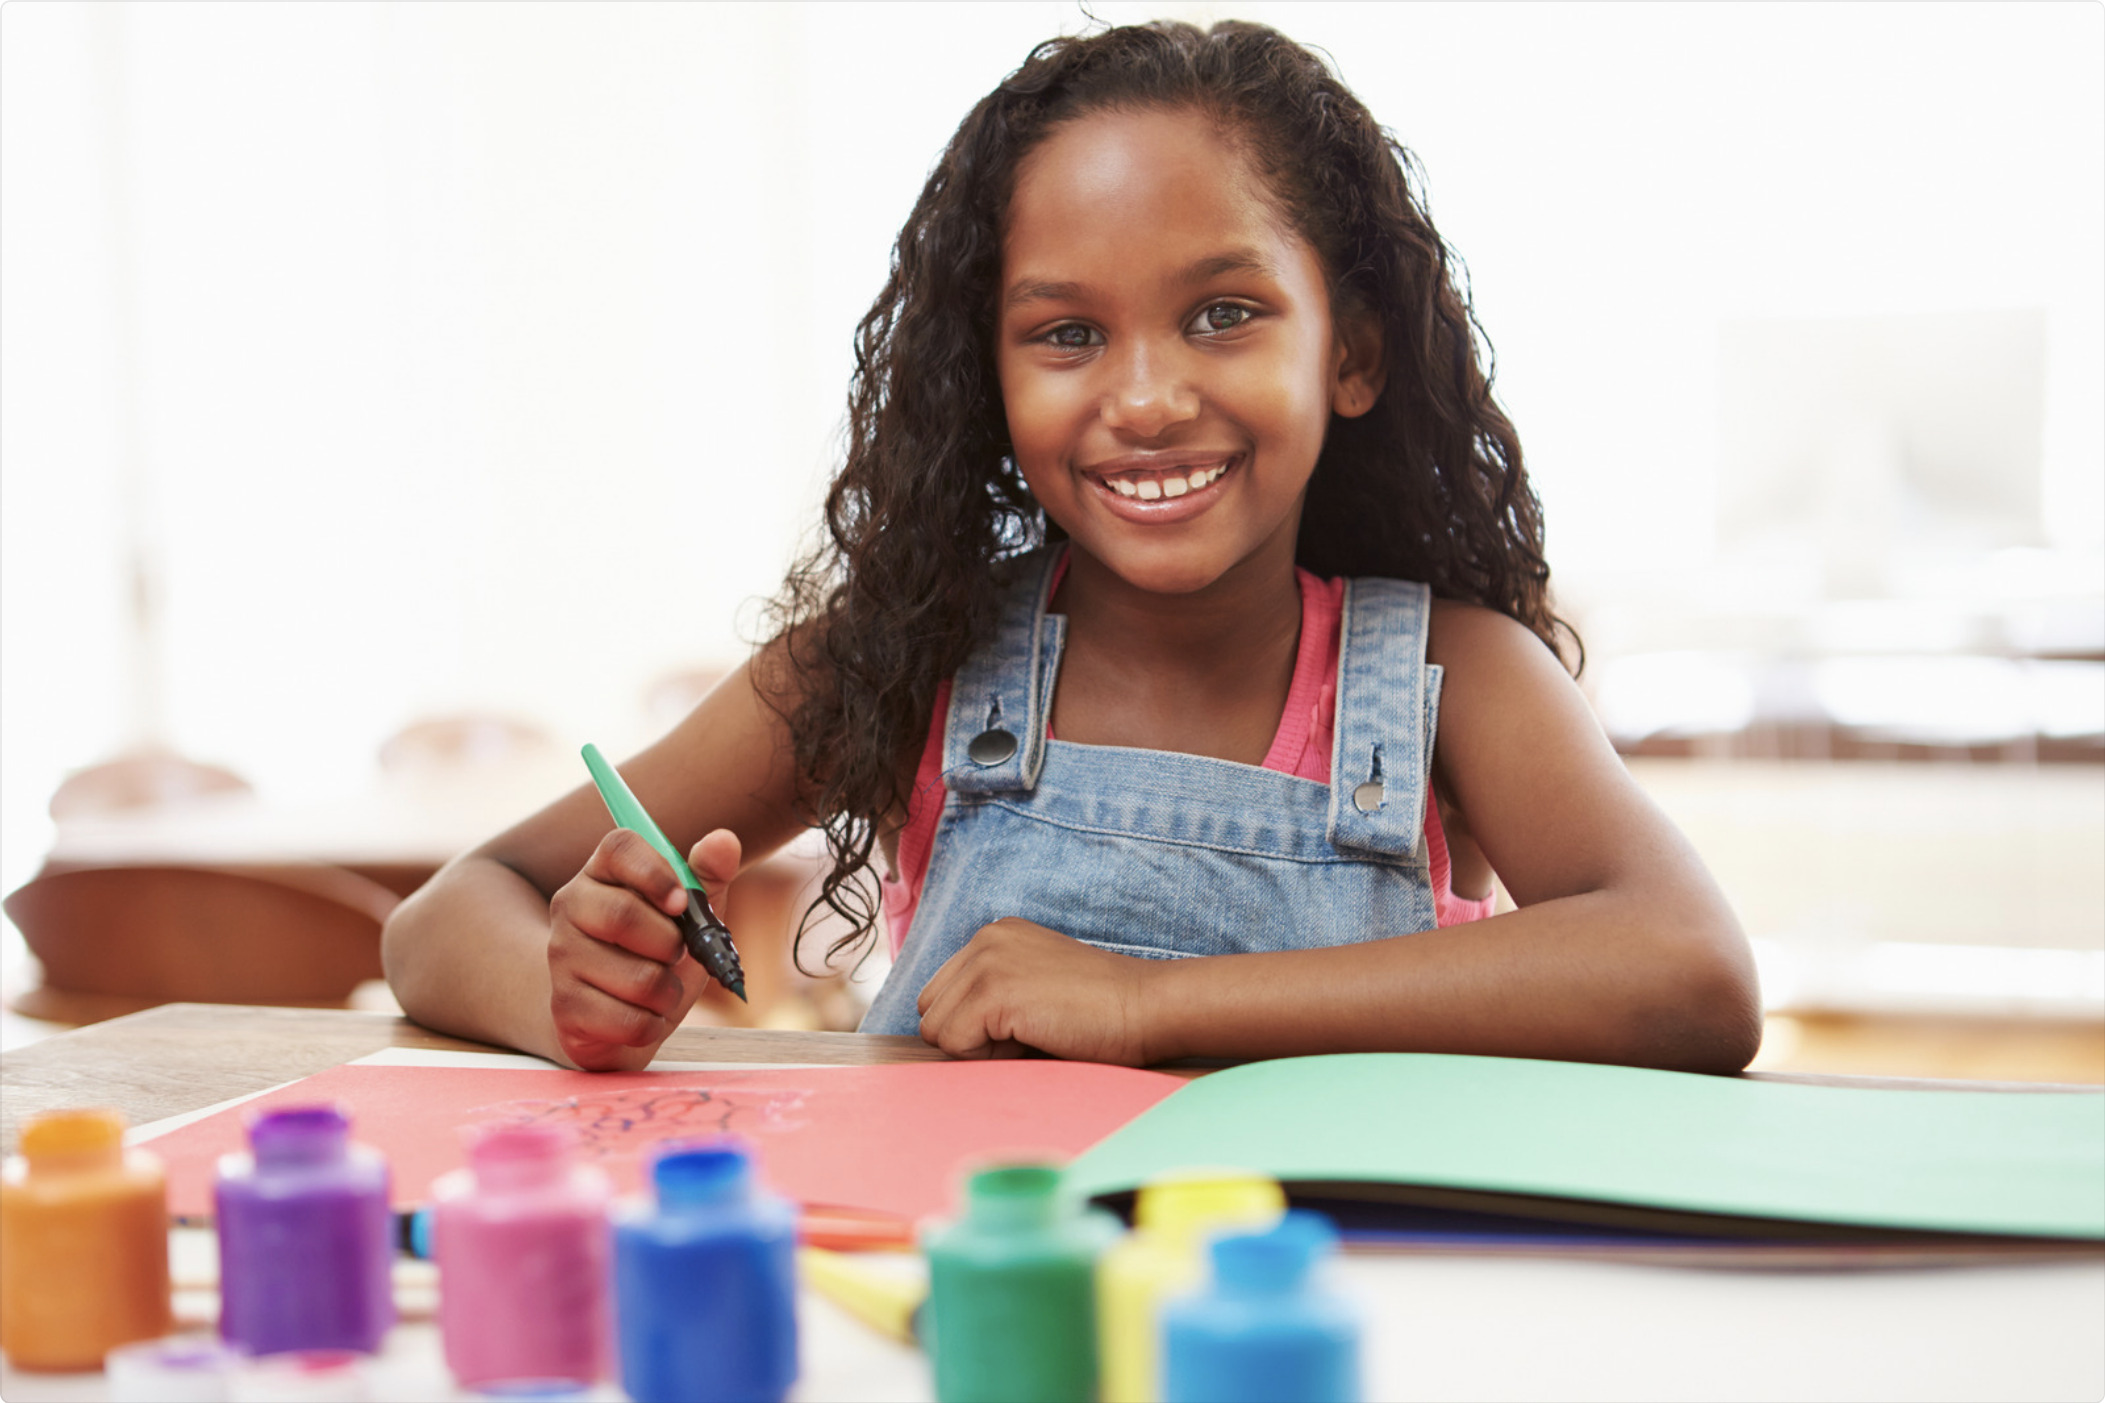 Help Your Child Express Herself With Art